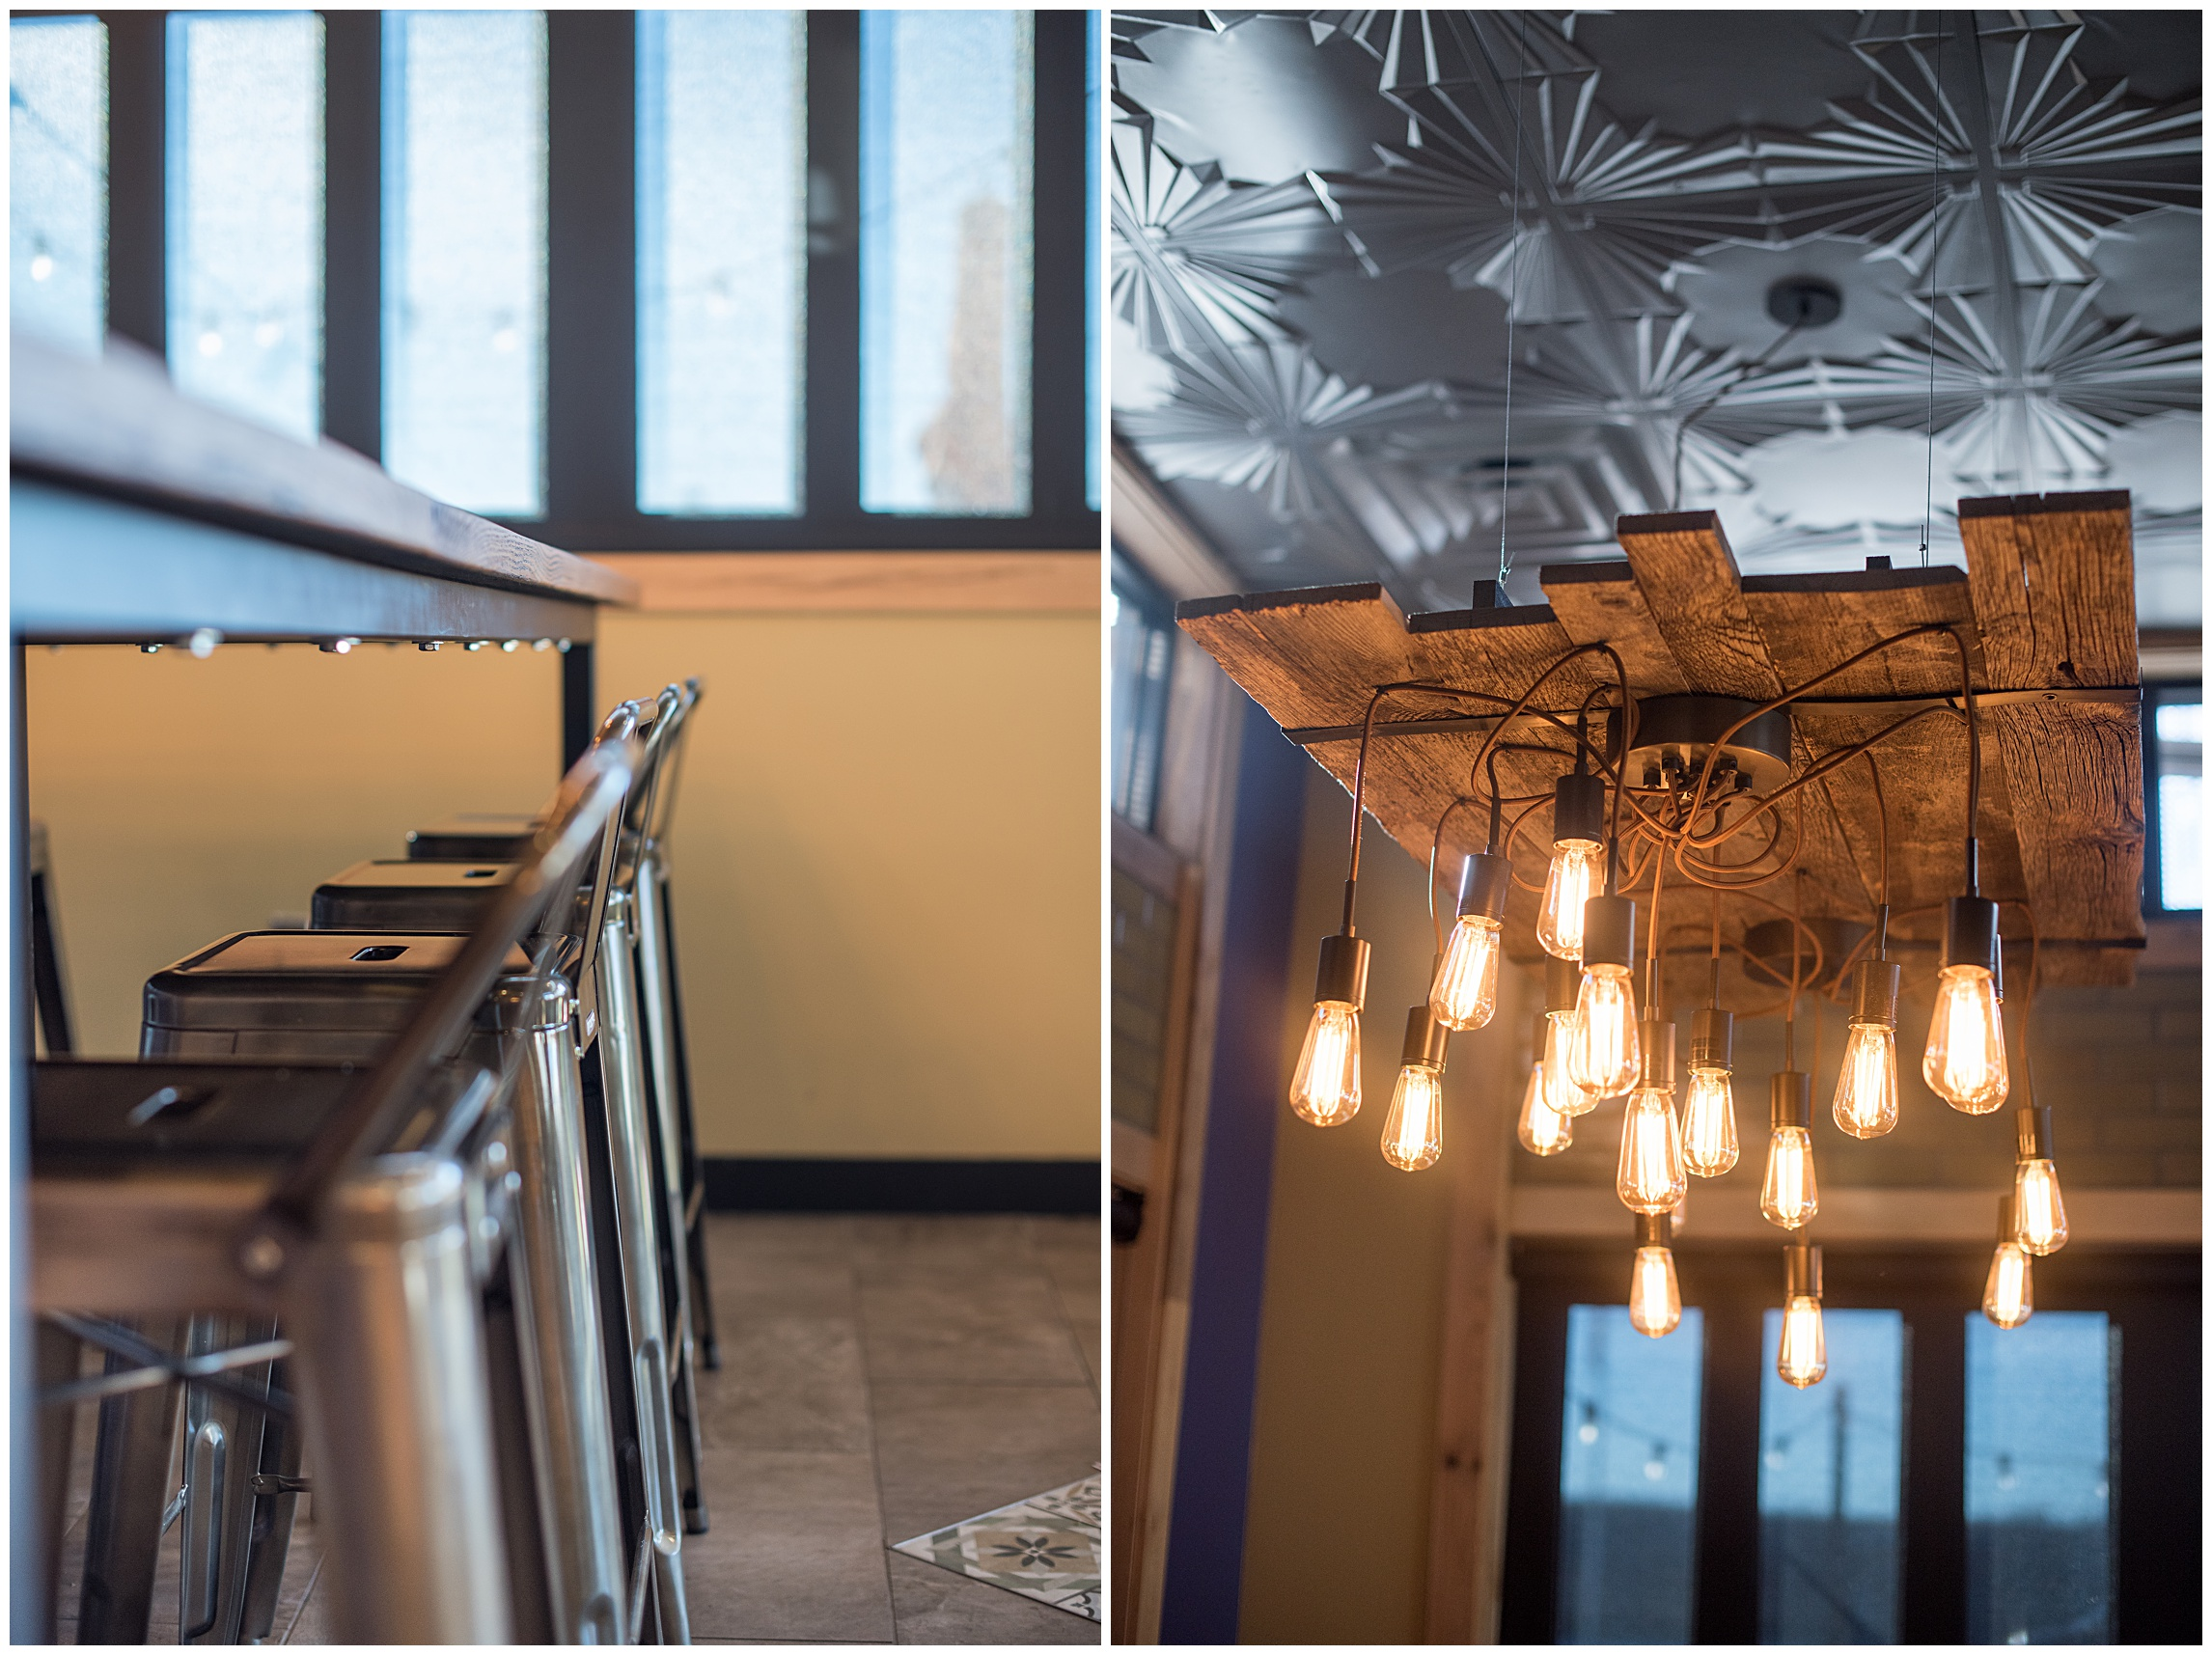 some detail architectural images of new features inside Qdoba's newest stores, by Sonja K Photography